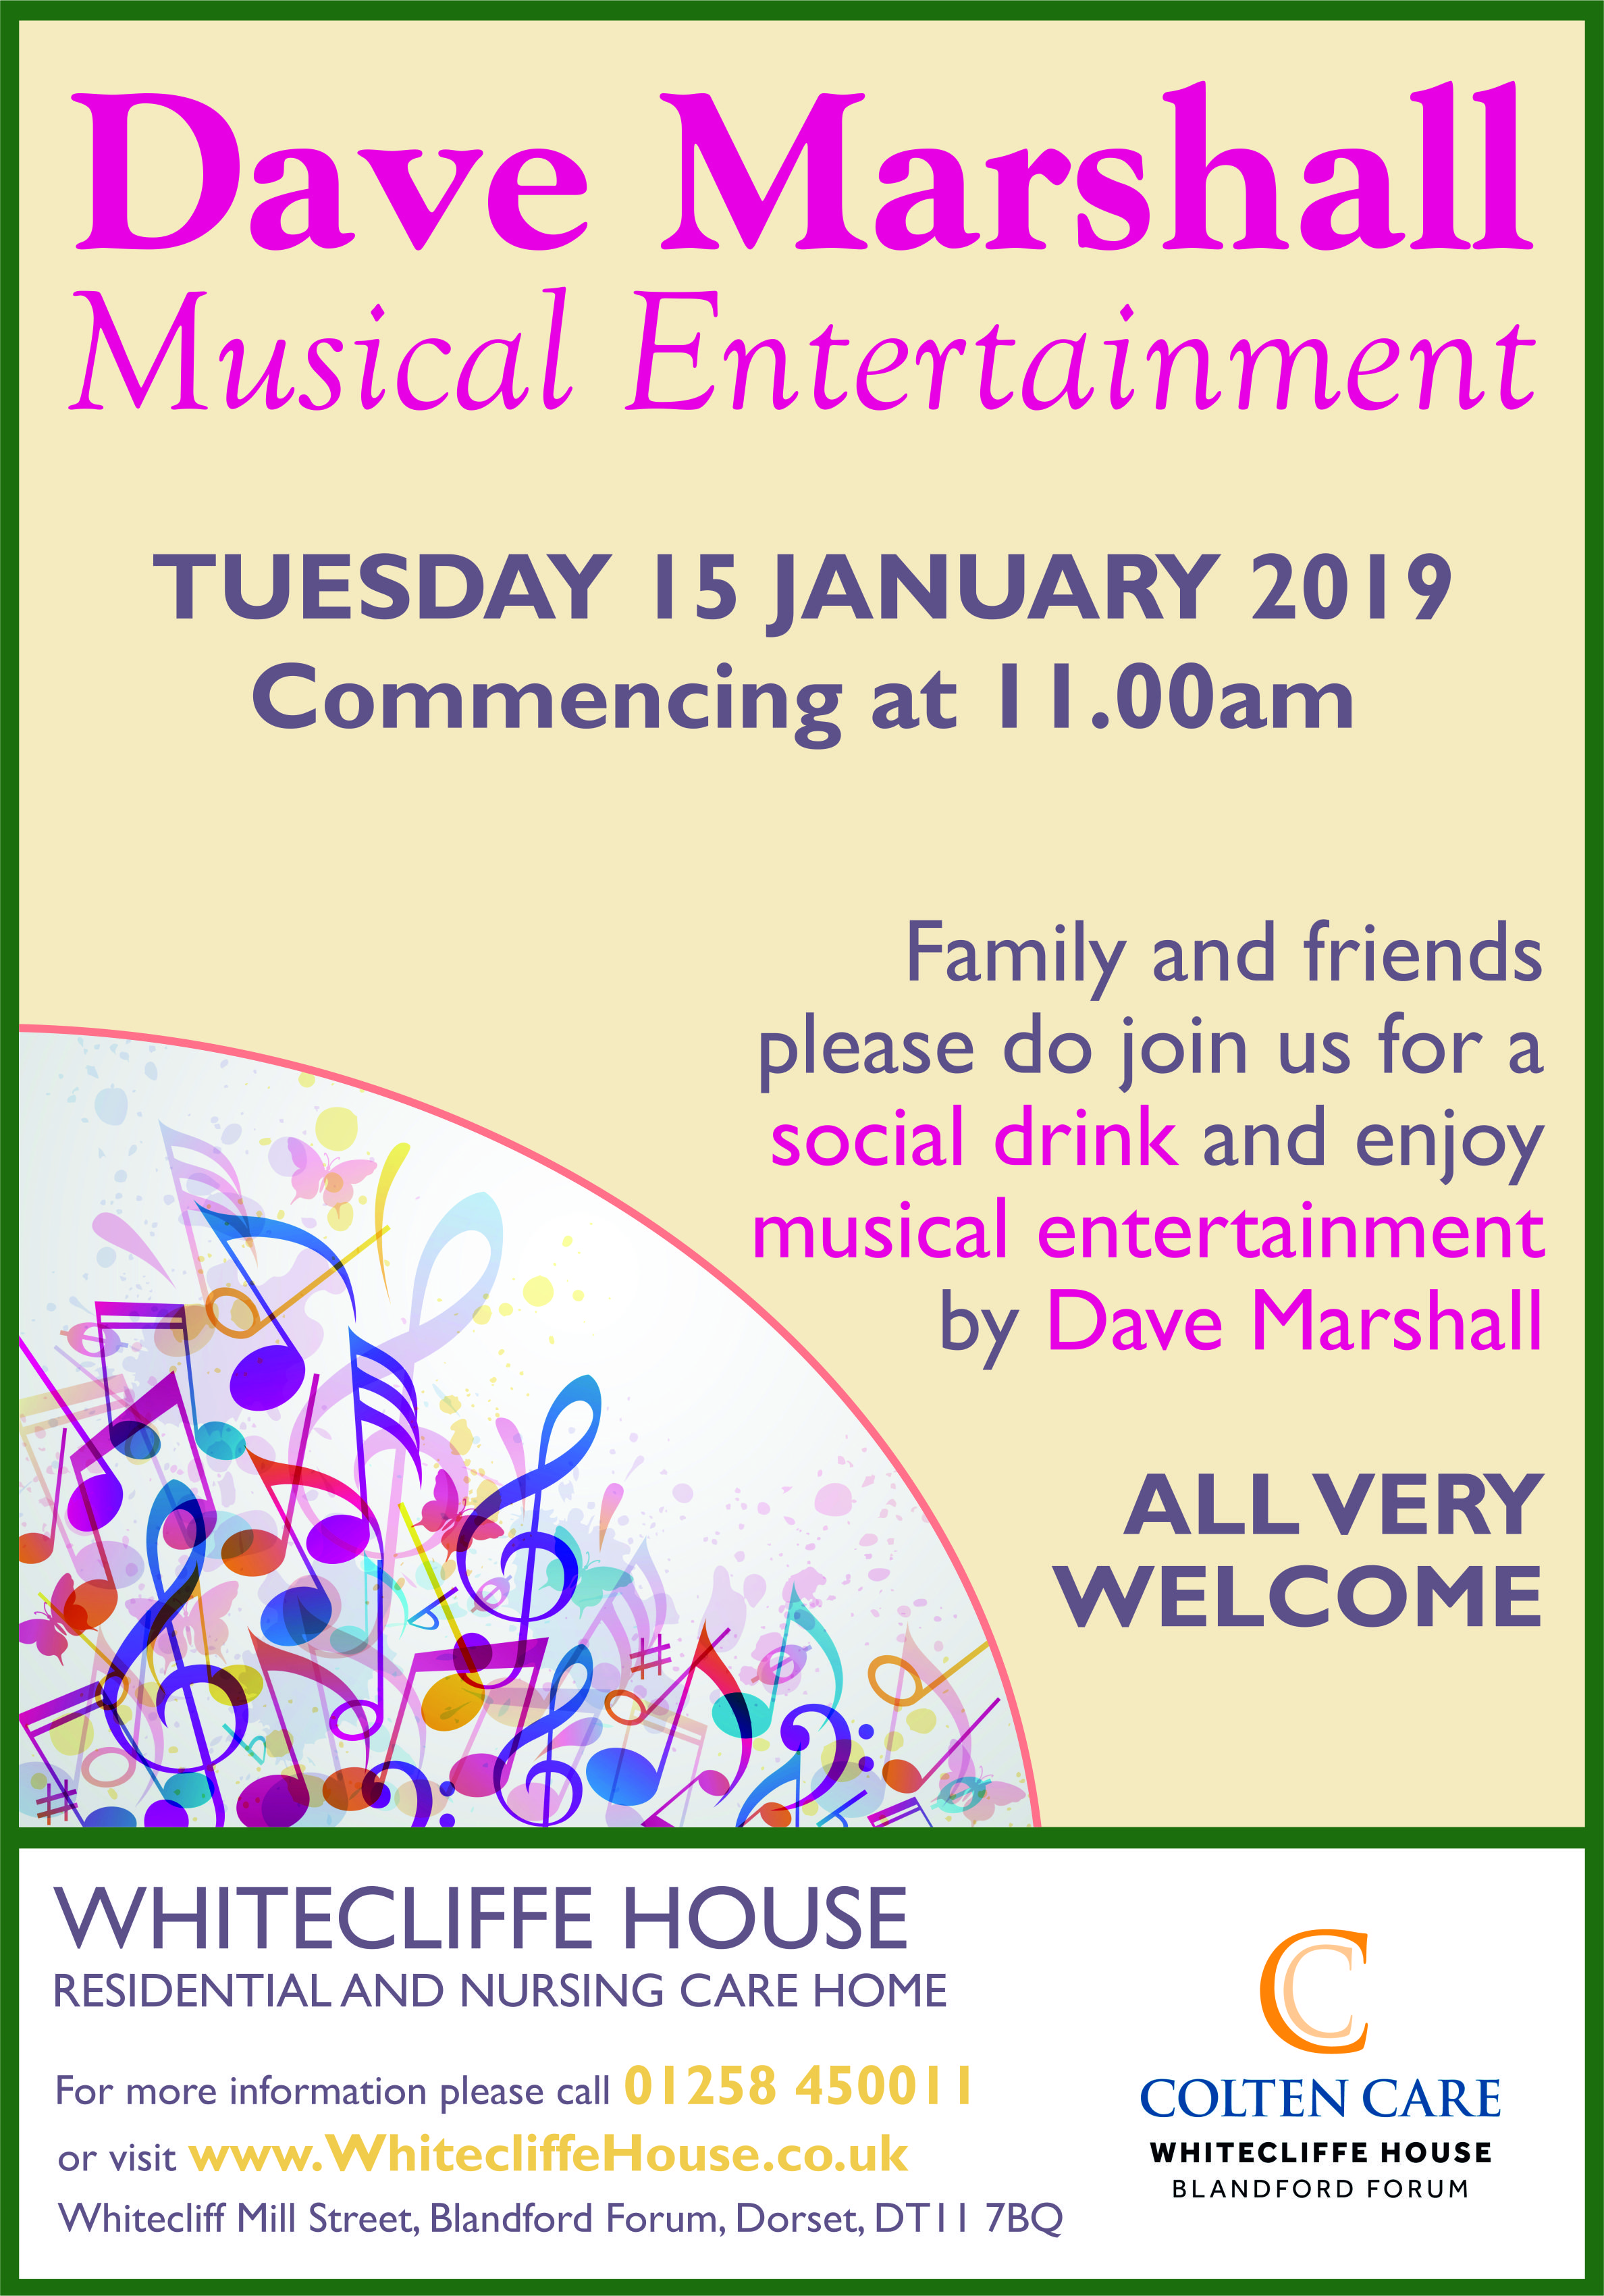 Whitecliffe House - Musical Entertainment Poster 15 Jan - 28 Nov 2018